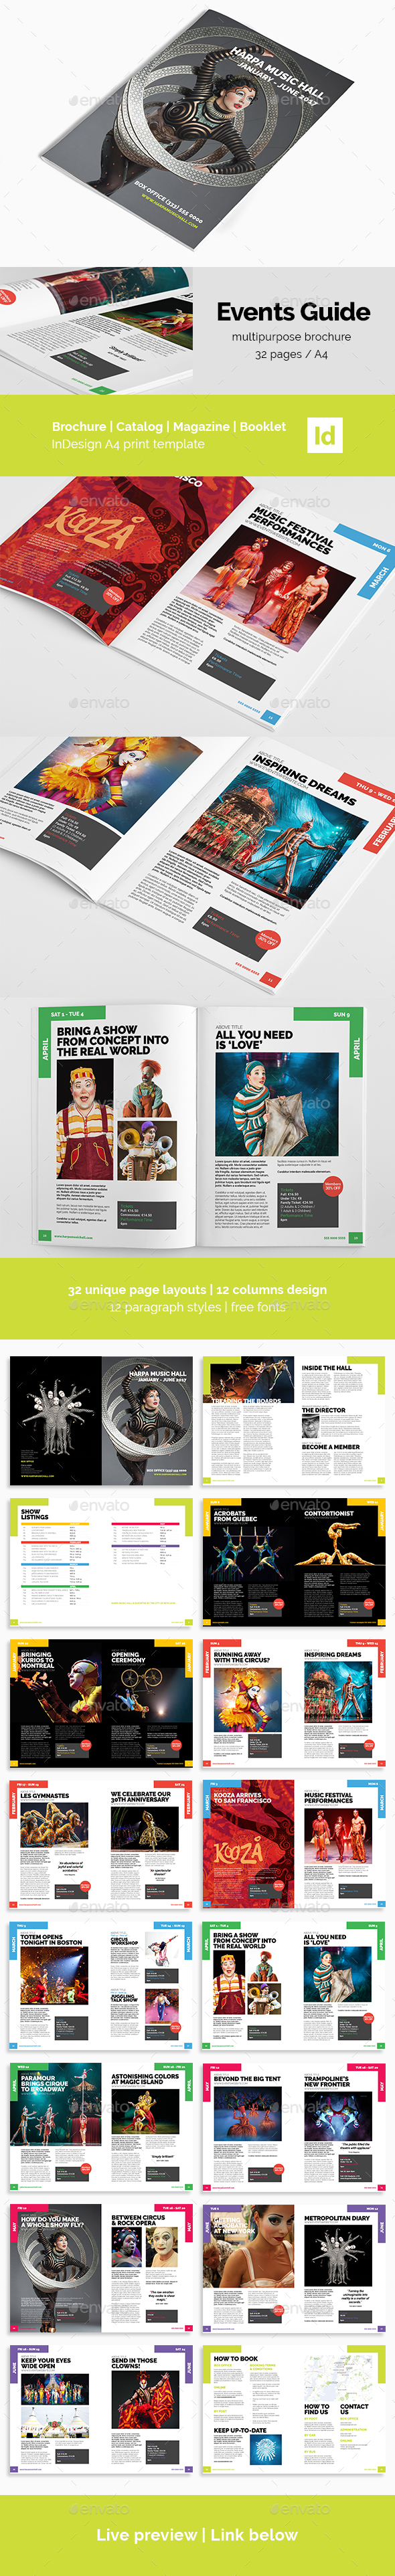 Event Guide | Creative Brochure - Magazines Print Templates